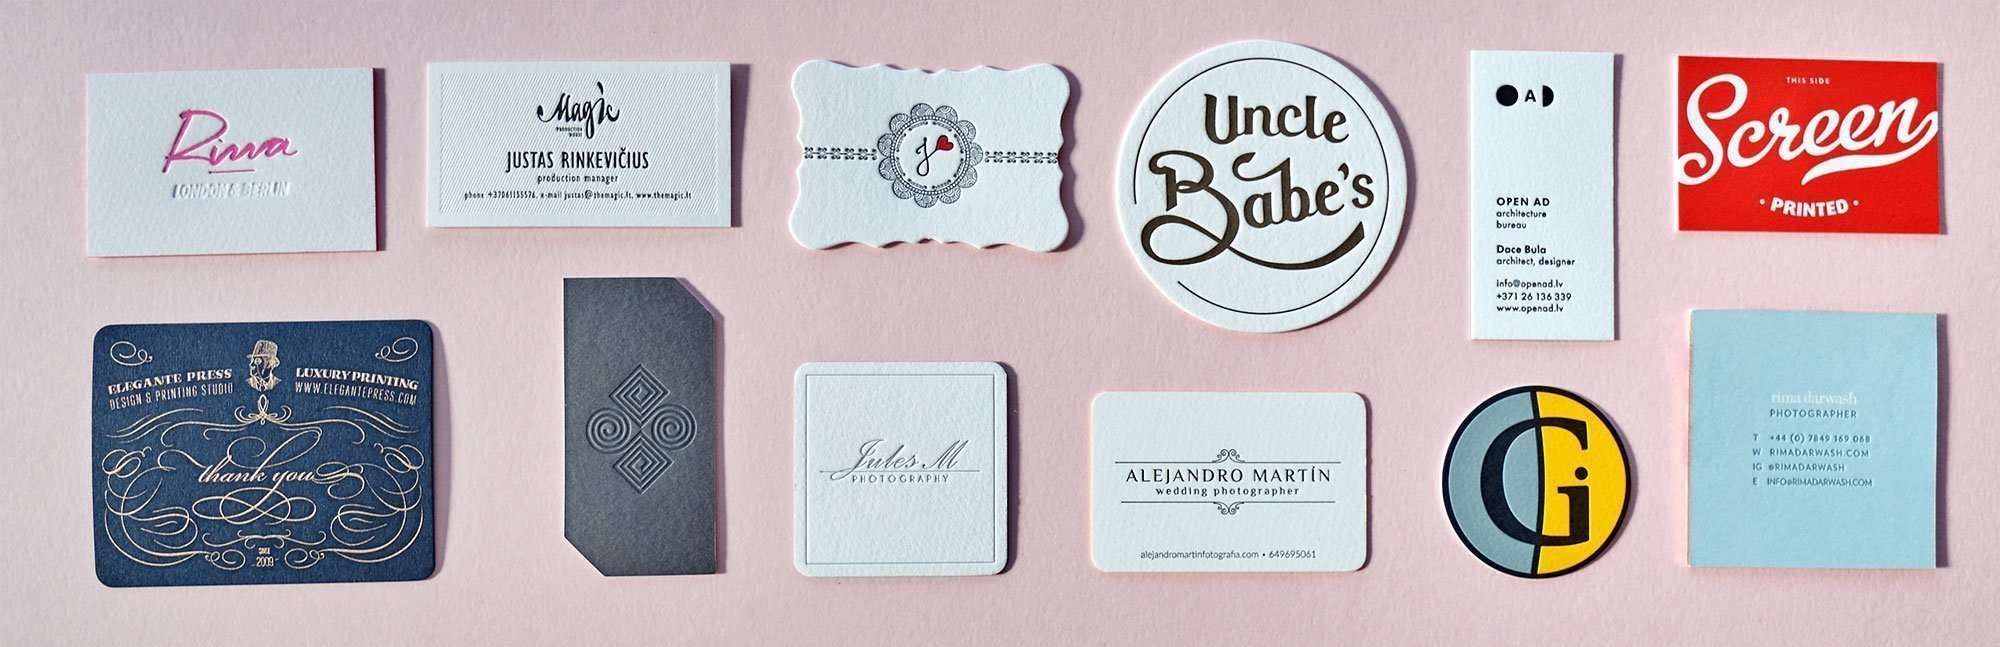 Business Card Sizes & Shapes | ELEGANTE PRESS